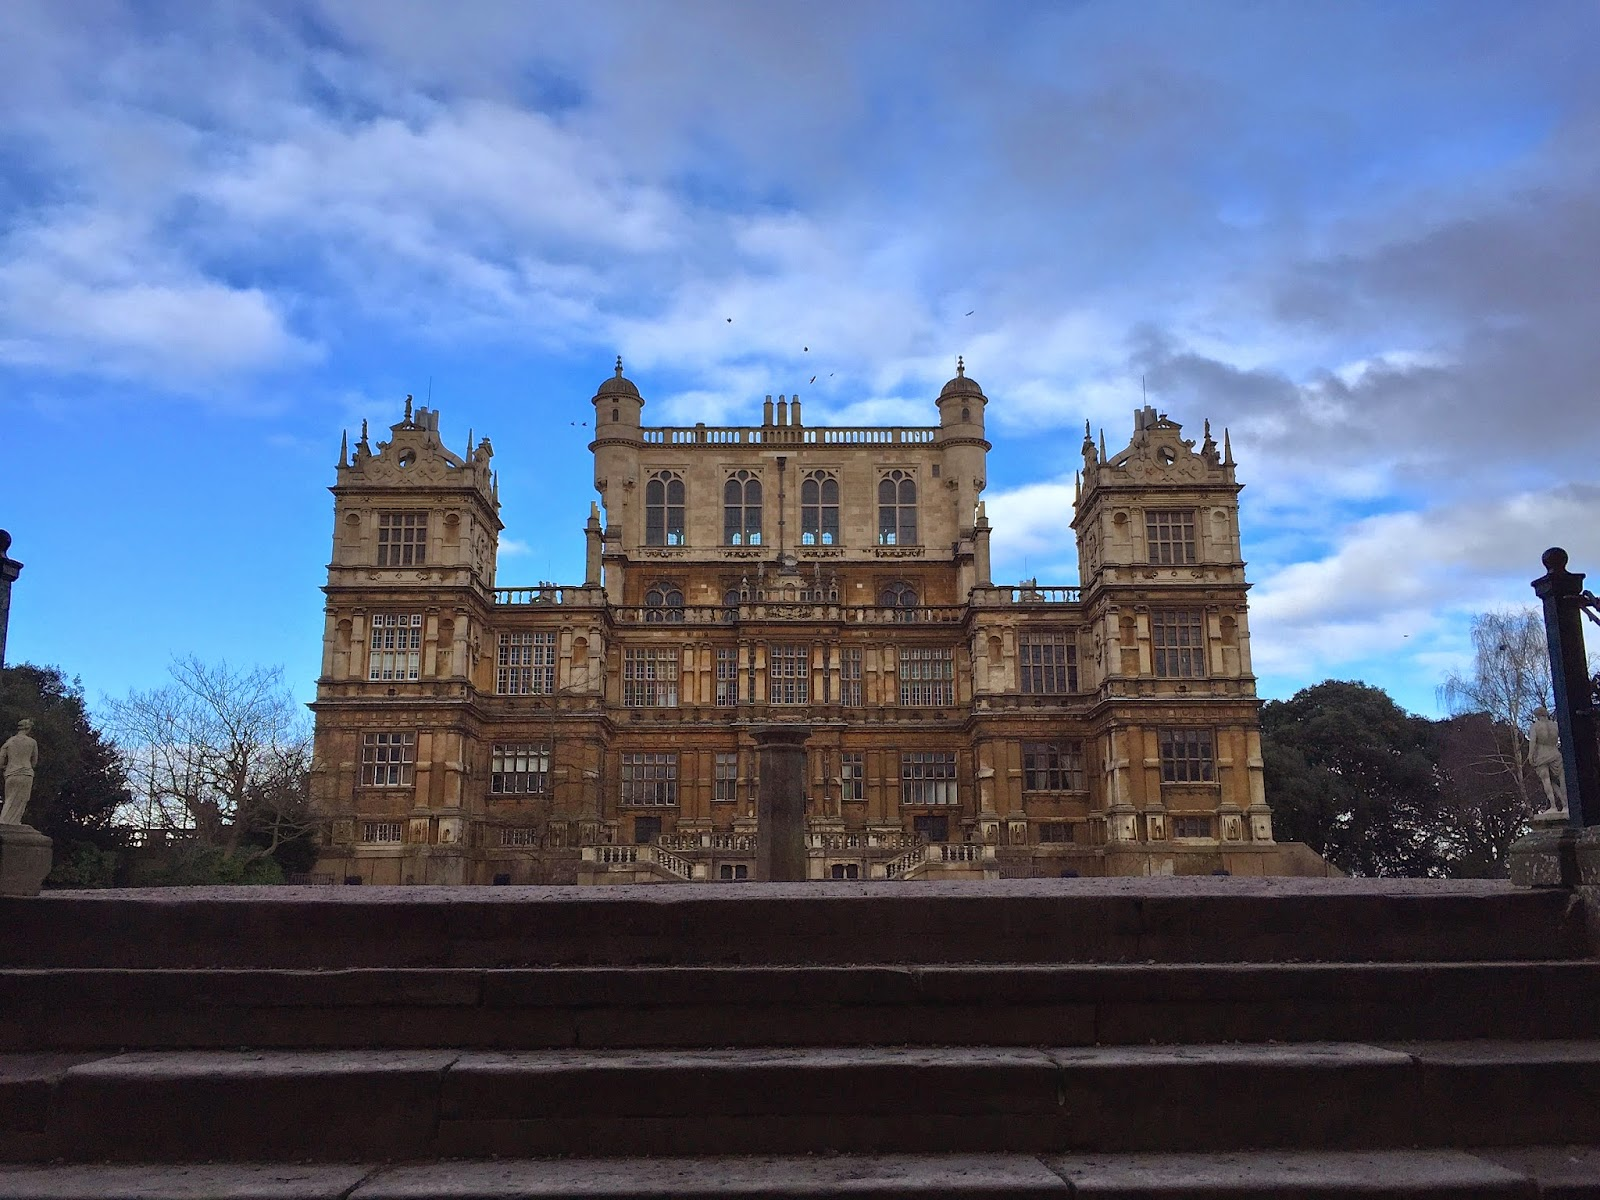 Morgan's Milieu | Health and Weight Loss Tips 5: Wollaton Hall, Nottingham